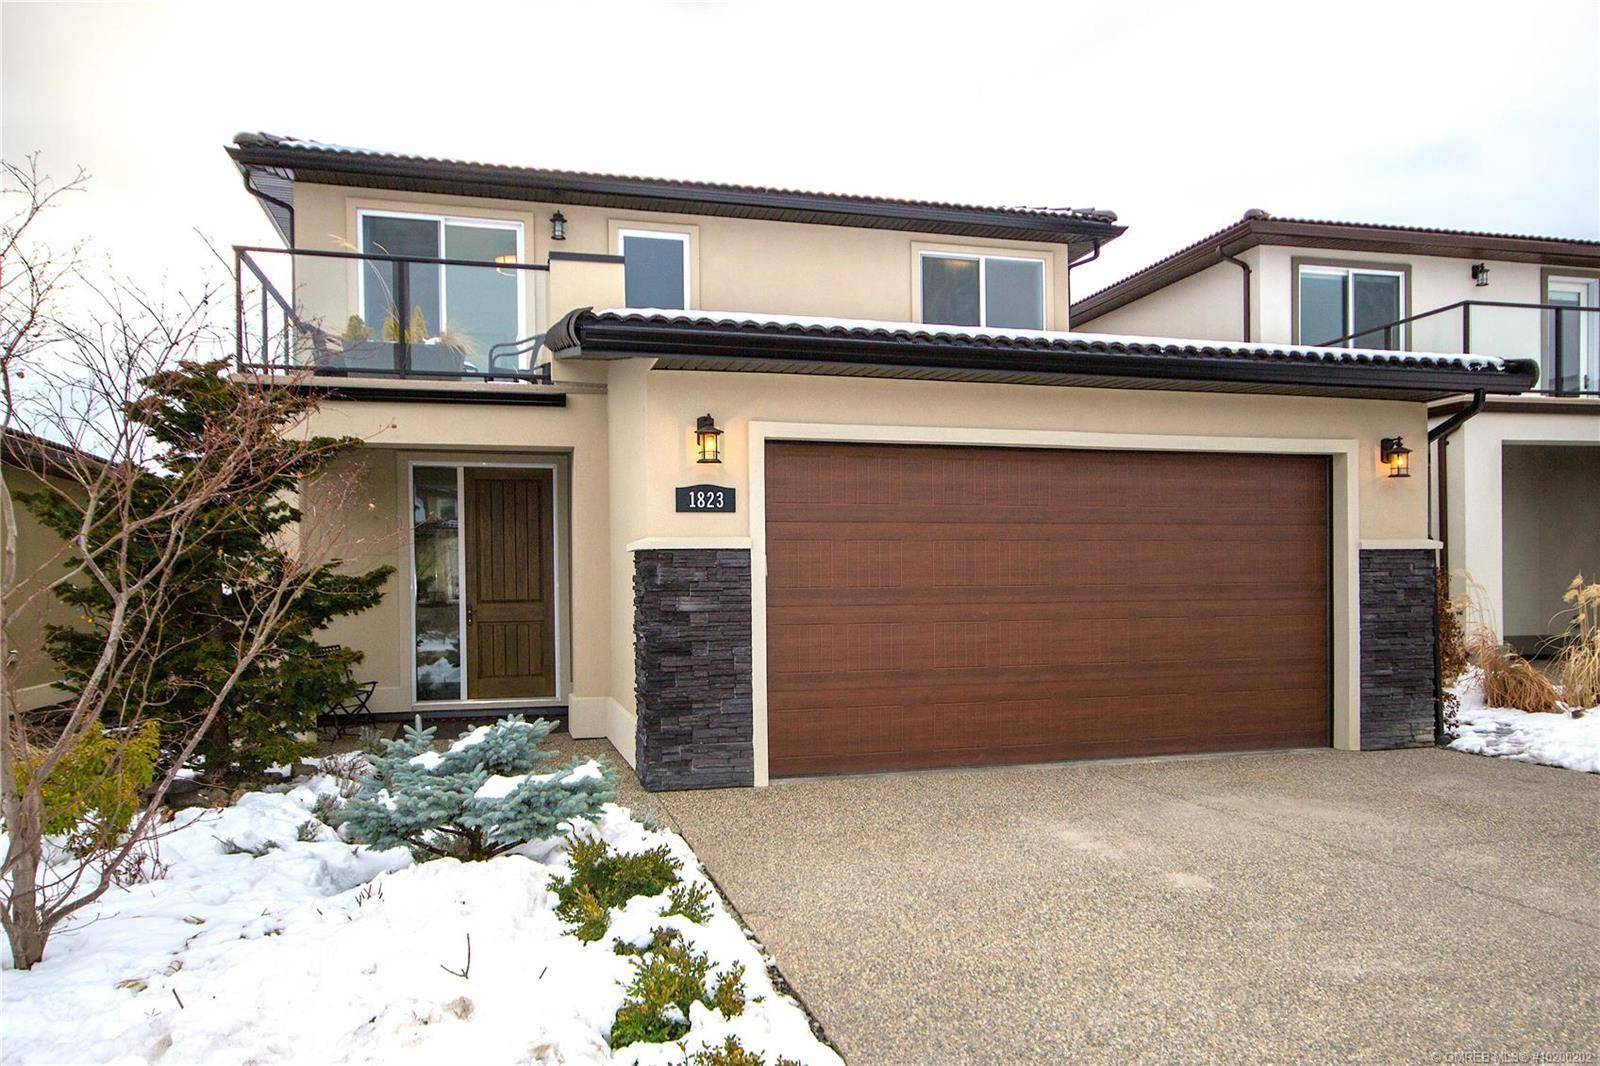 House for sale at 1823 Viewpoint Dr West Kelowna British Columbia - MLS: 10200202